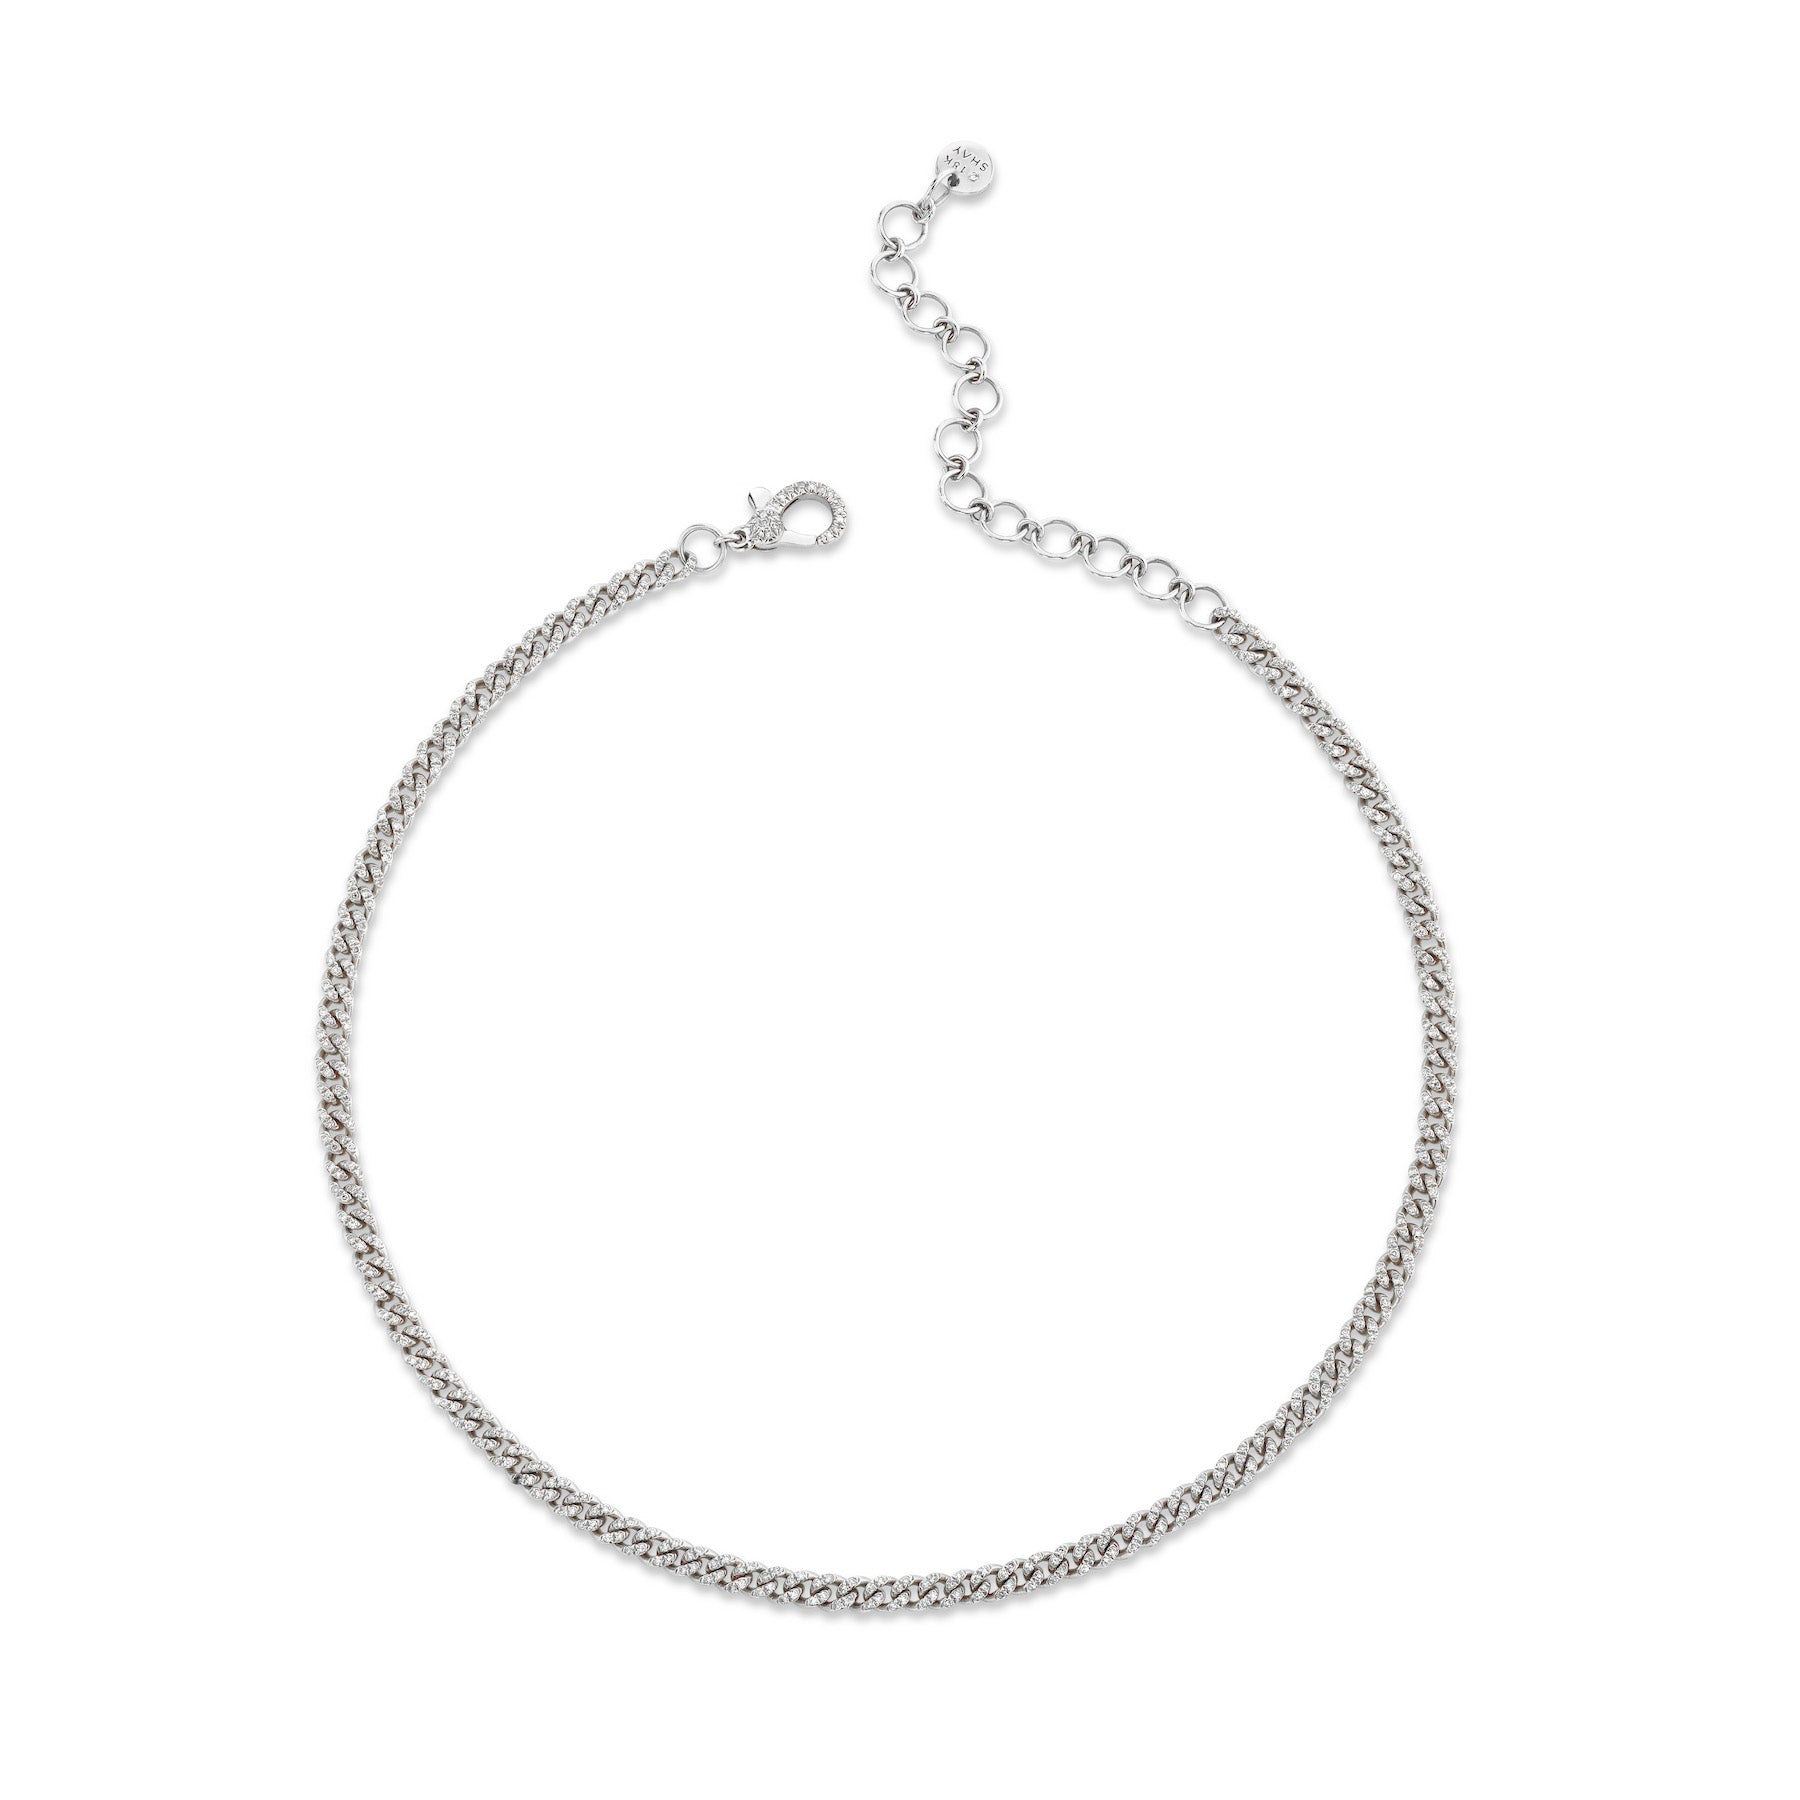 DIAMOND PAVE BABY LINK NECKLACE